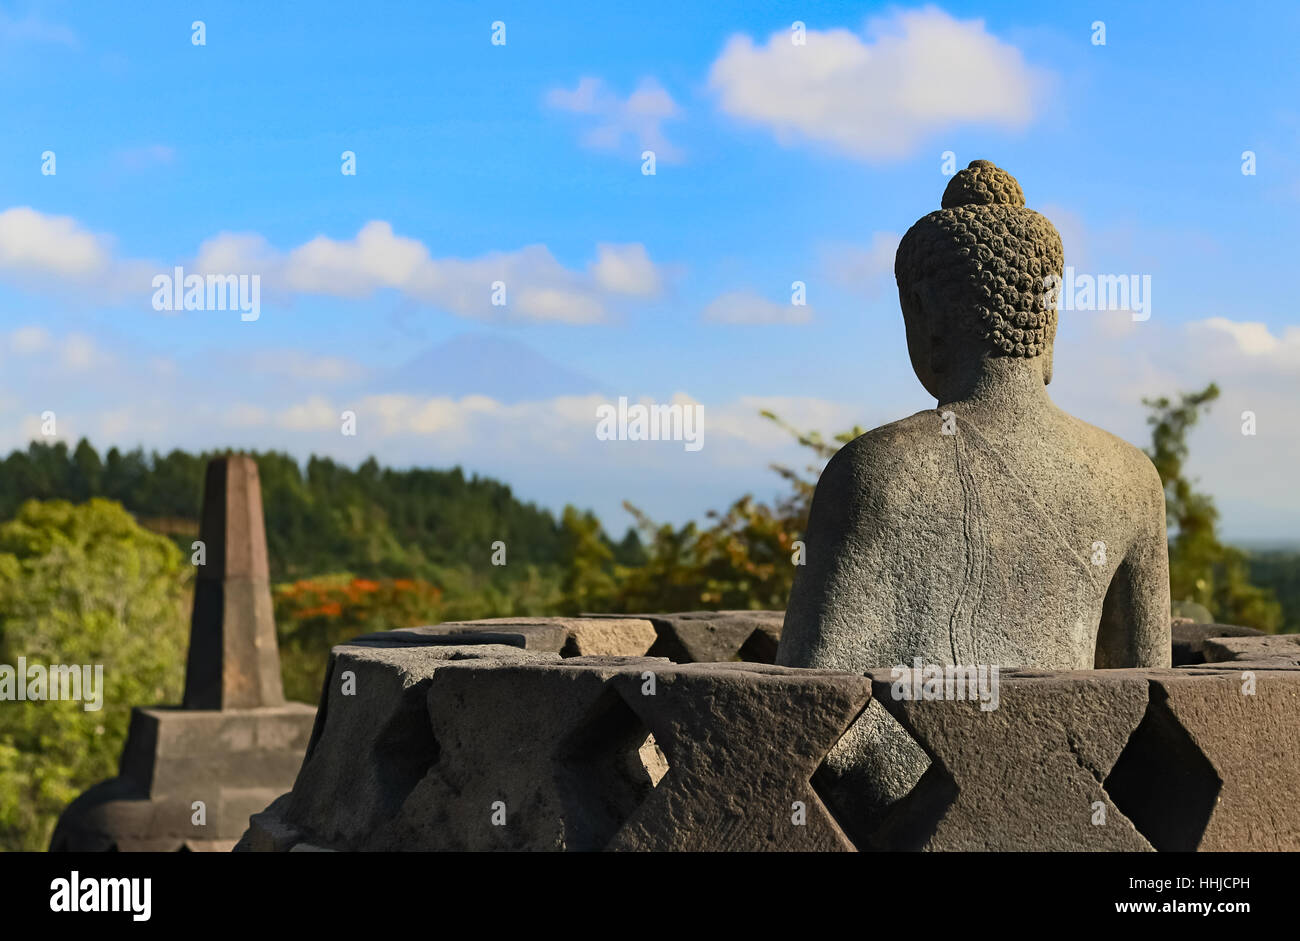 A statue of Buddha looks out towards Mount Merapi from the Borobudur Temple in Magelang, Central Java, Indonesia. - Stock Image